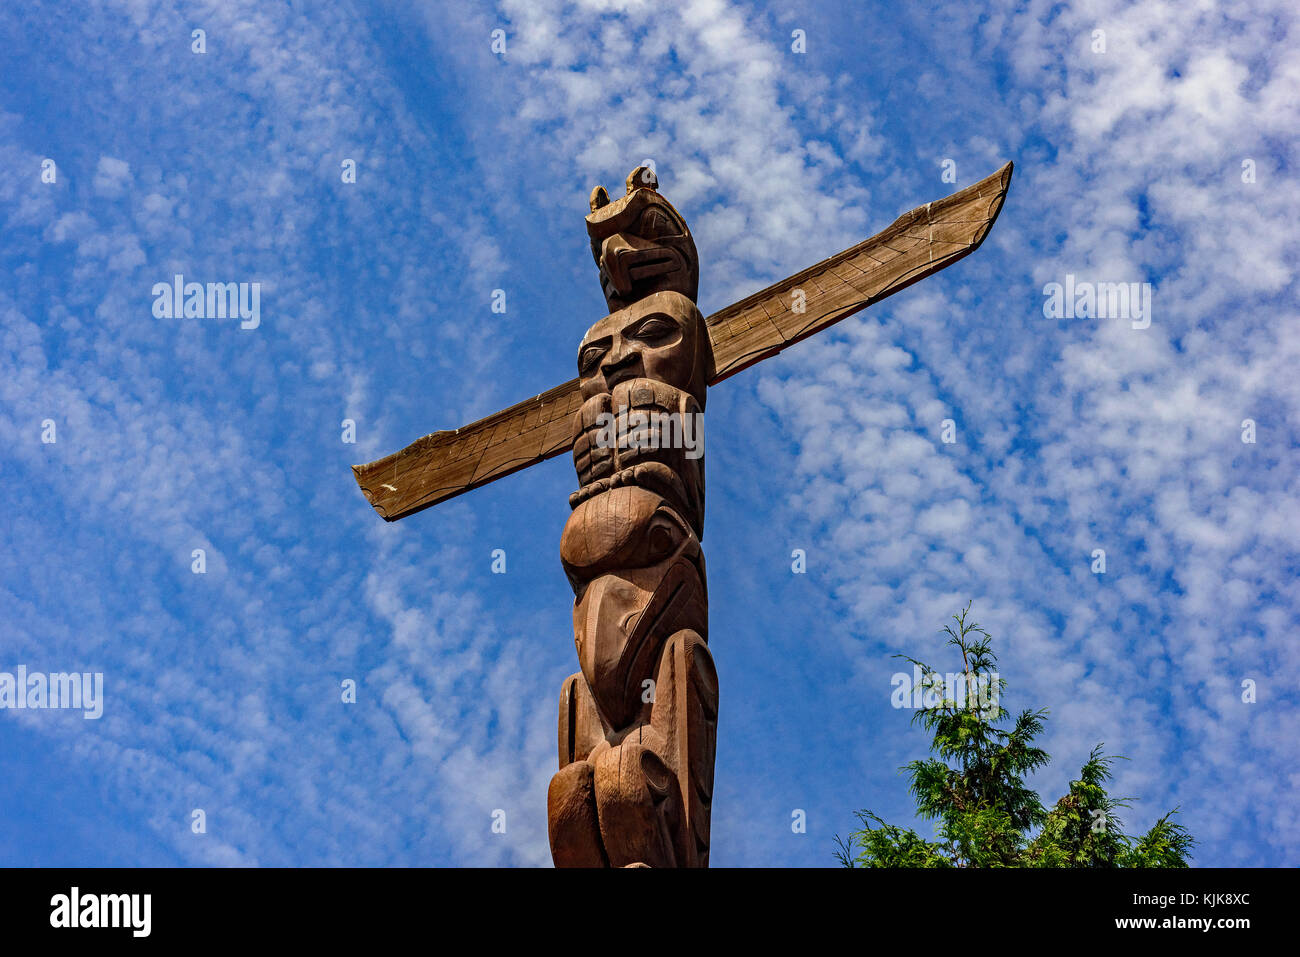 Totem Pole Carving Granville Island